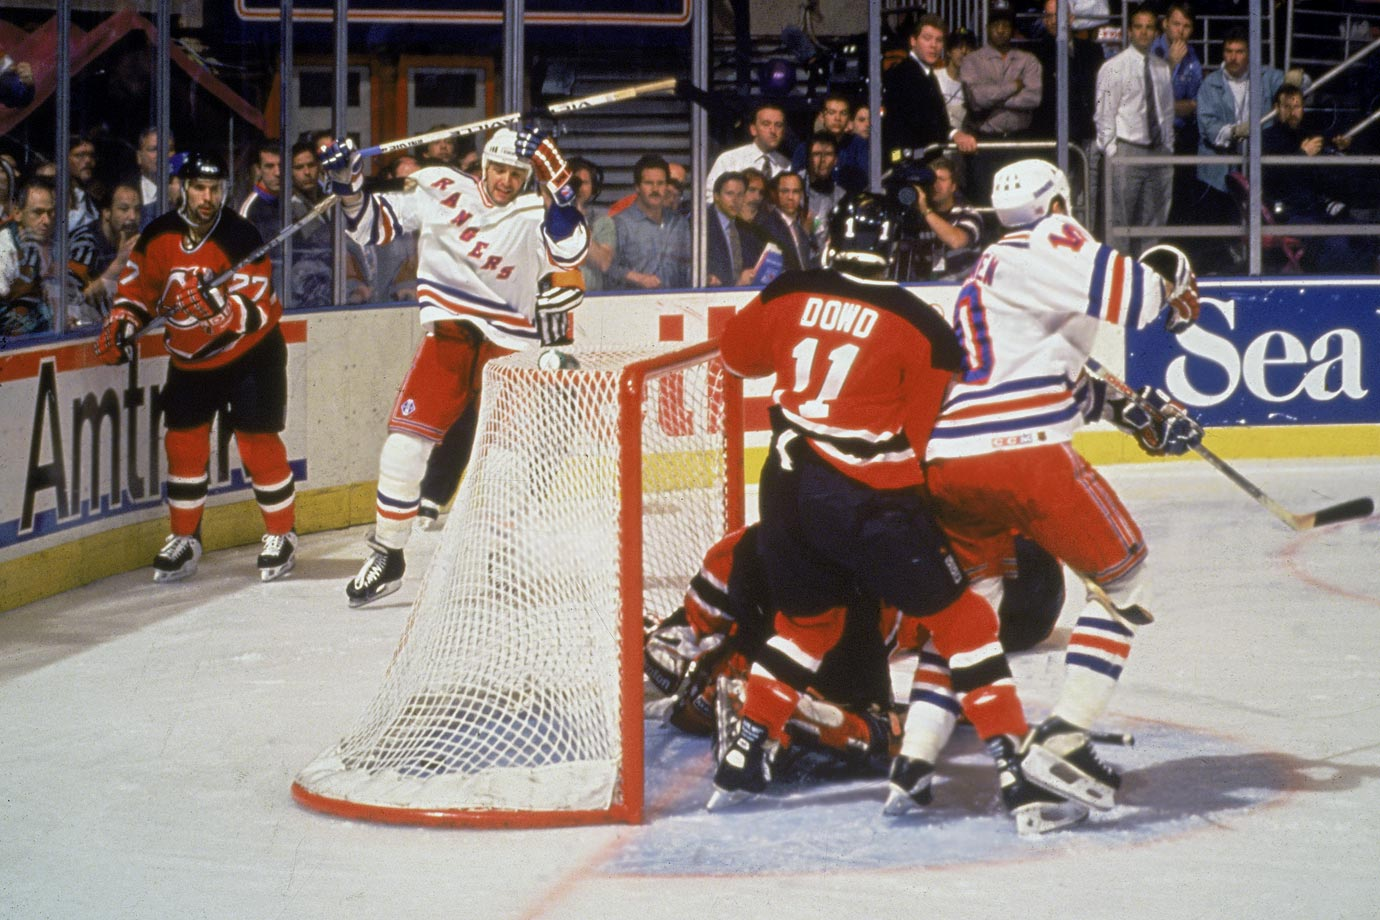 "Mark Messier's legendary vow, an epic goaltending duel between Mike Richter and Martin Brodeur, one of hockey's most enduring calls: ""Matteau! Matteau! Matteau!"" The Blueshirts and Devils swapped leads early in the series until New Jersey took control with a 4-1 beatdown in Game 5. The loss prompted Messier to famously guarantee a Rangers win in Game 6, one he personally delivered with three goals and four points. The finale was a tight-checking affair that extended to 2-OT before Stephane Matteau swung out from behind New Jersey's net and punched New York's ticket to the Cup finals, beating Brodeur on the wraparound."